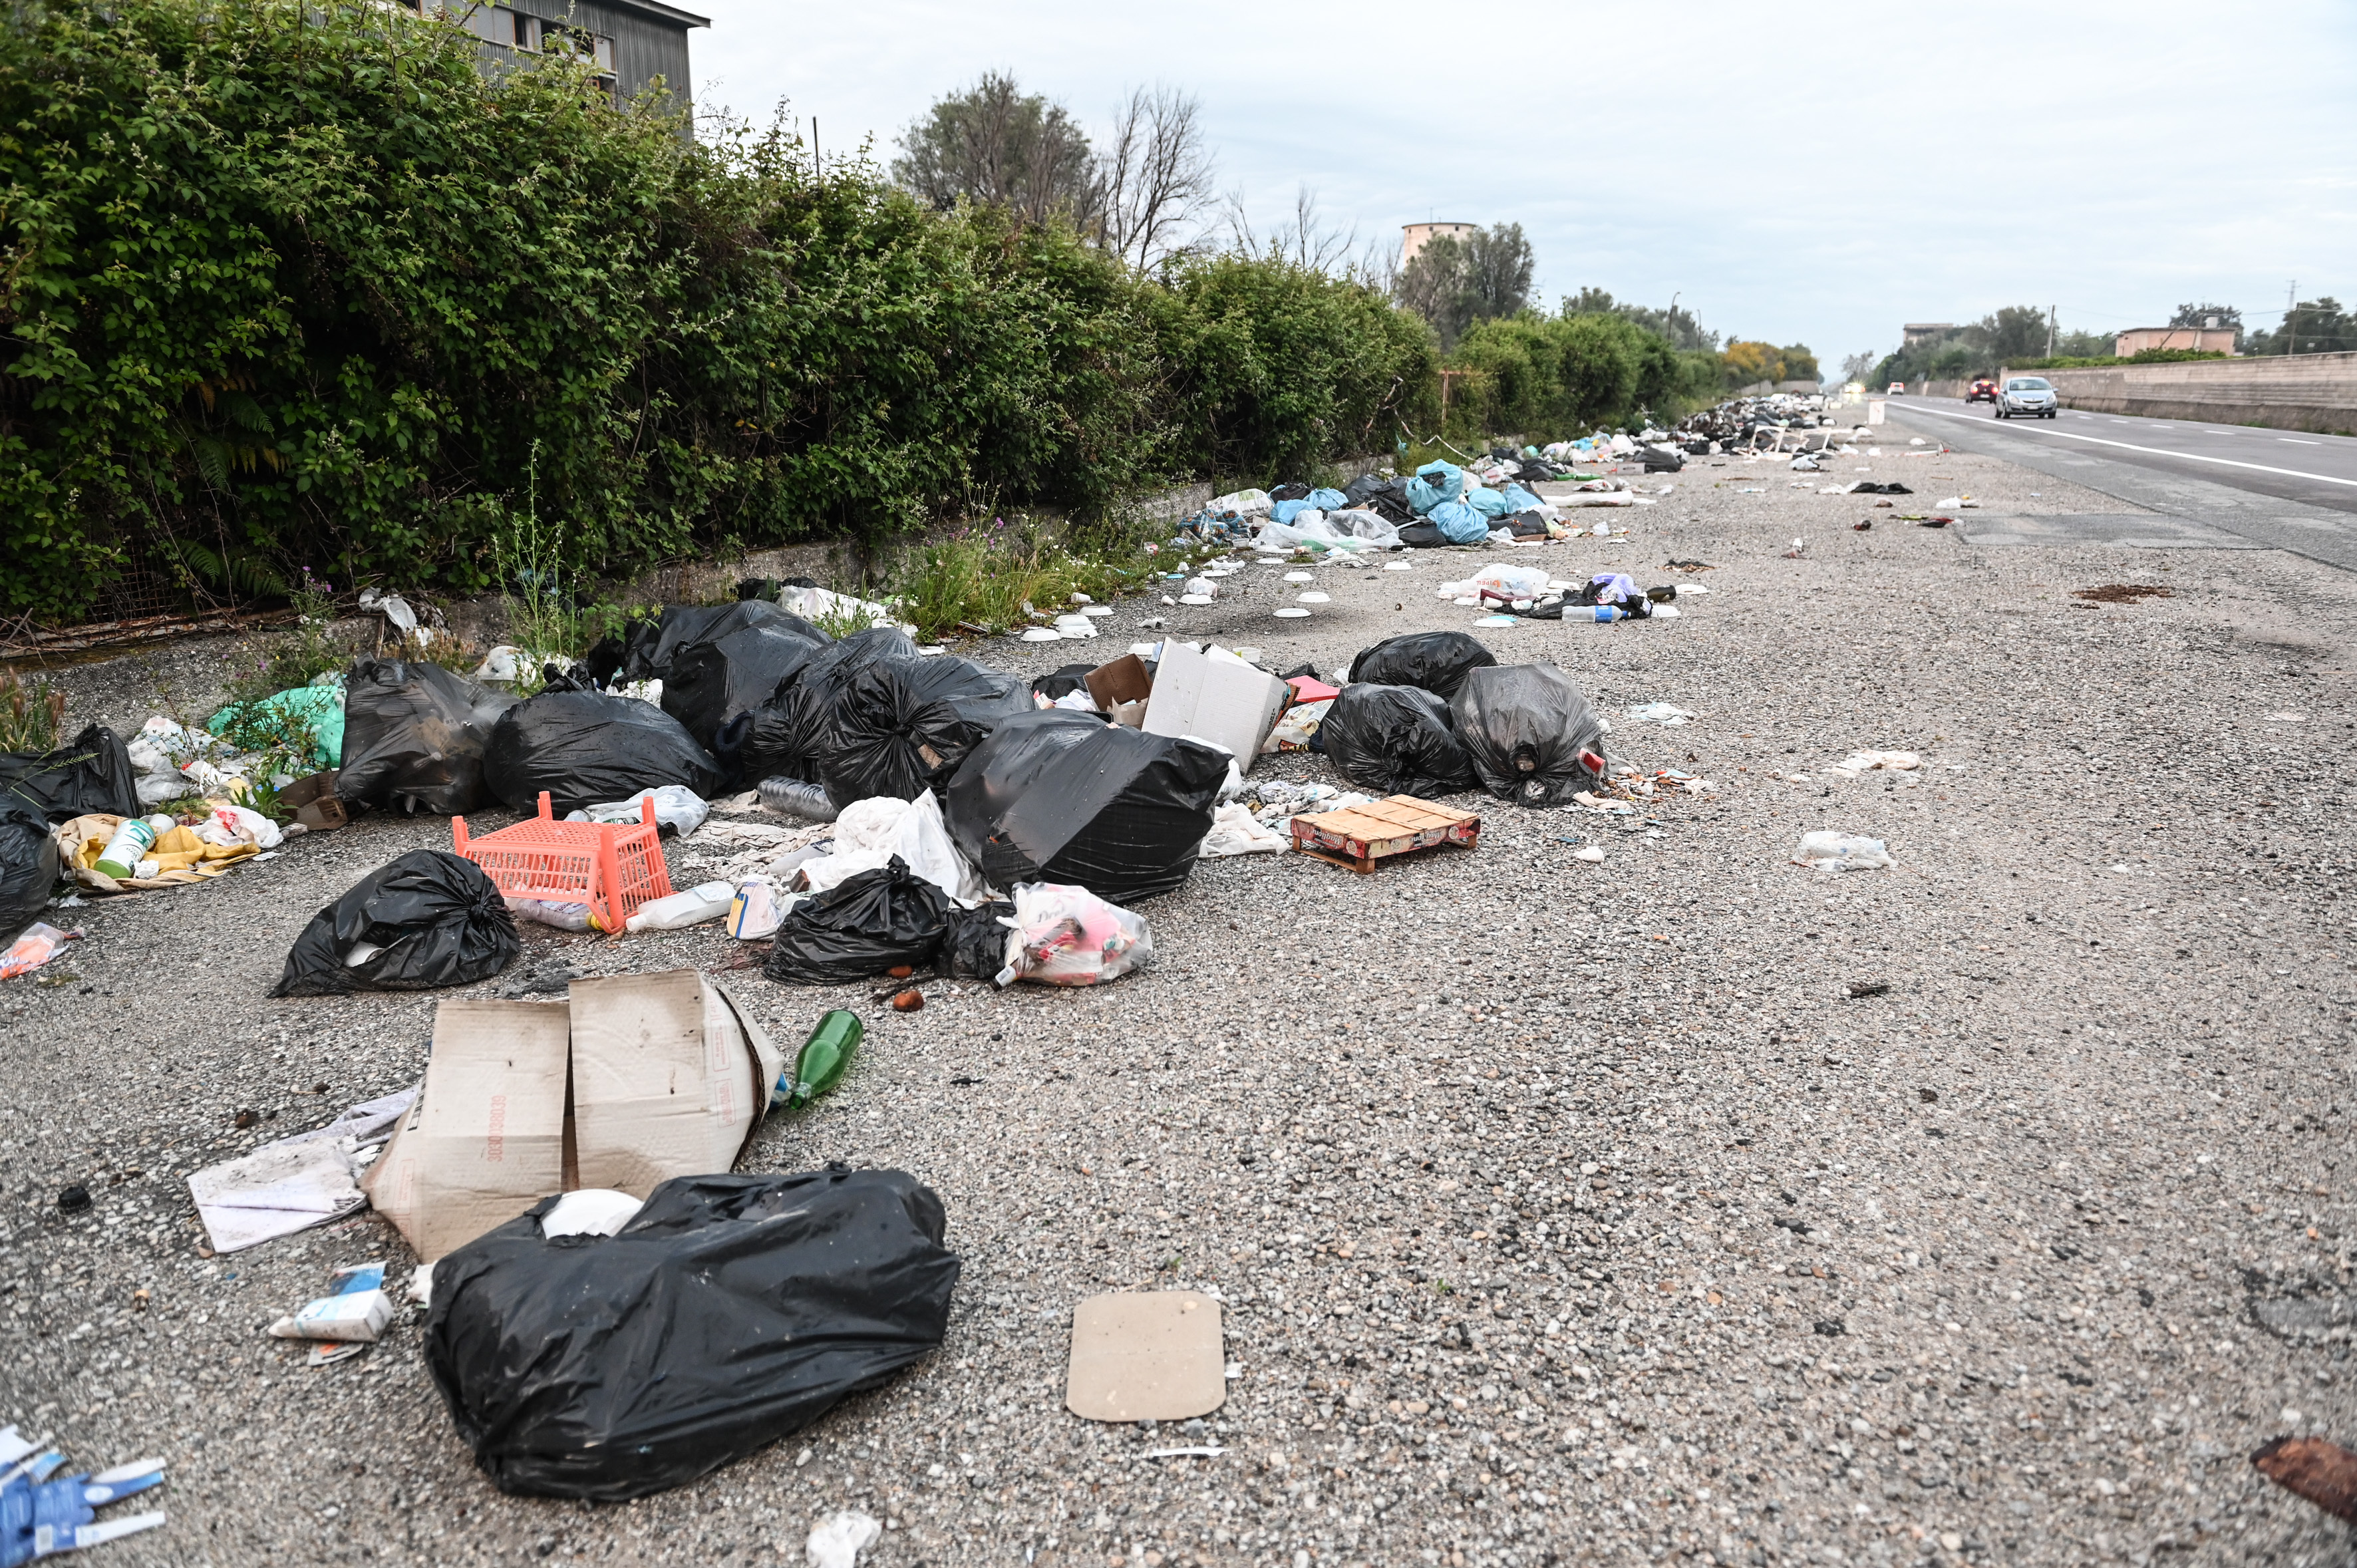 Garbage strewn along a stretch of road is one of many signs of the hostility towards public space expressed in Mafia cultures. (Chris Warde-Jones)